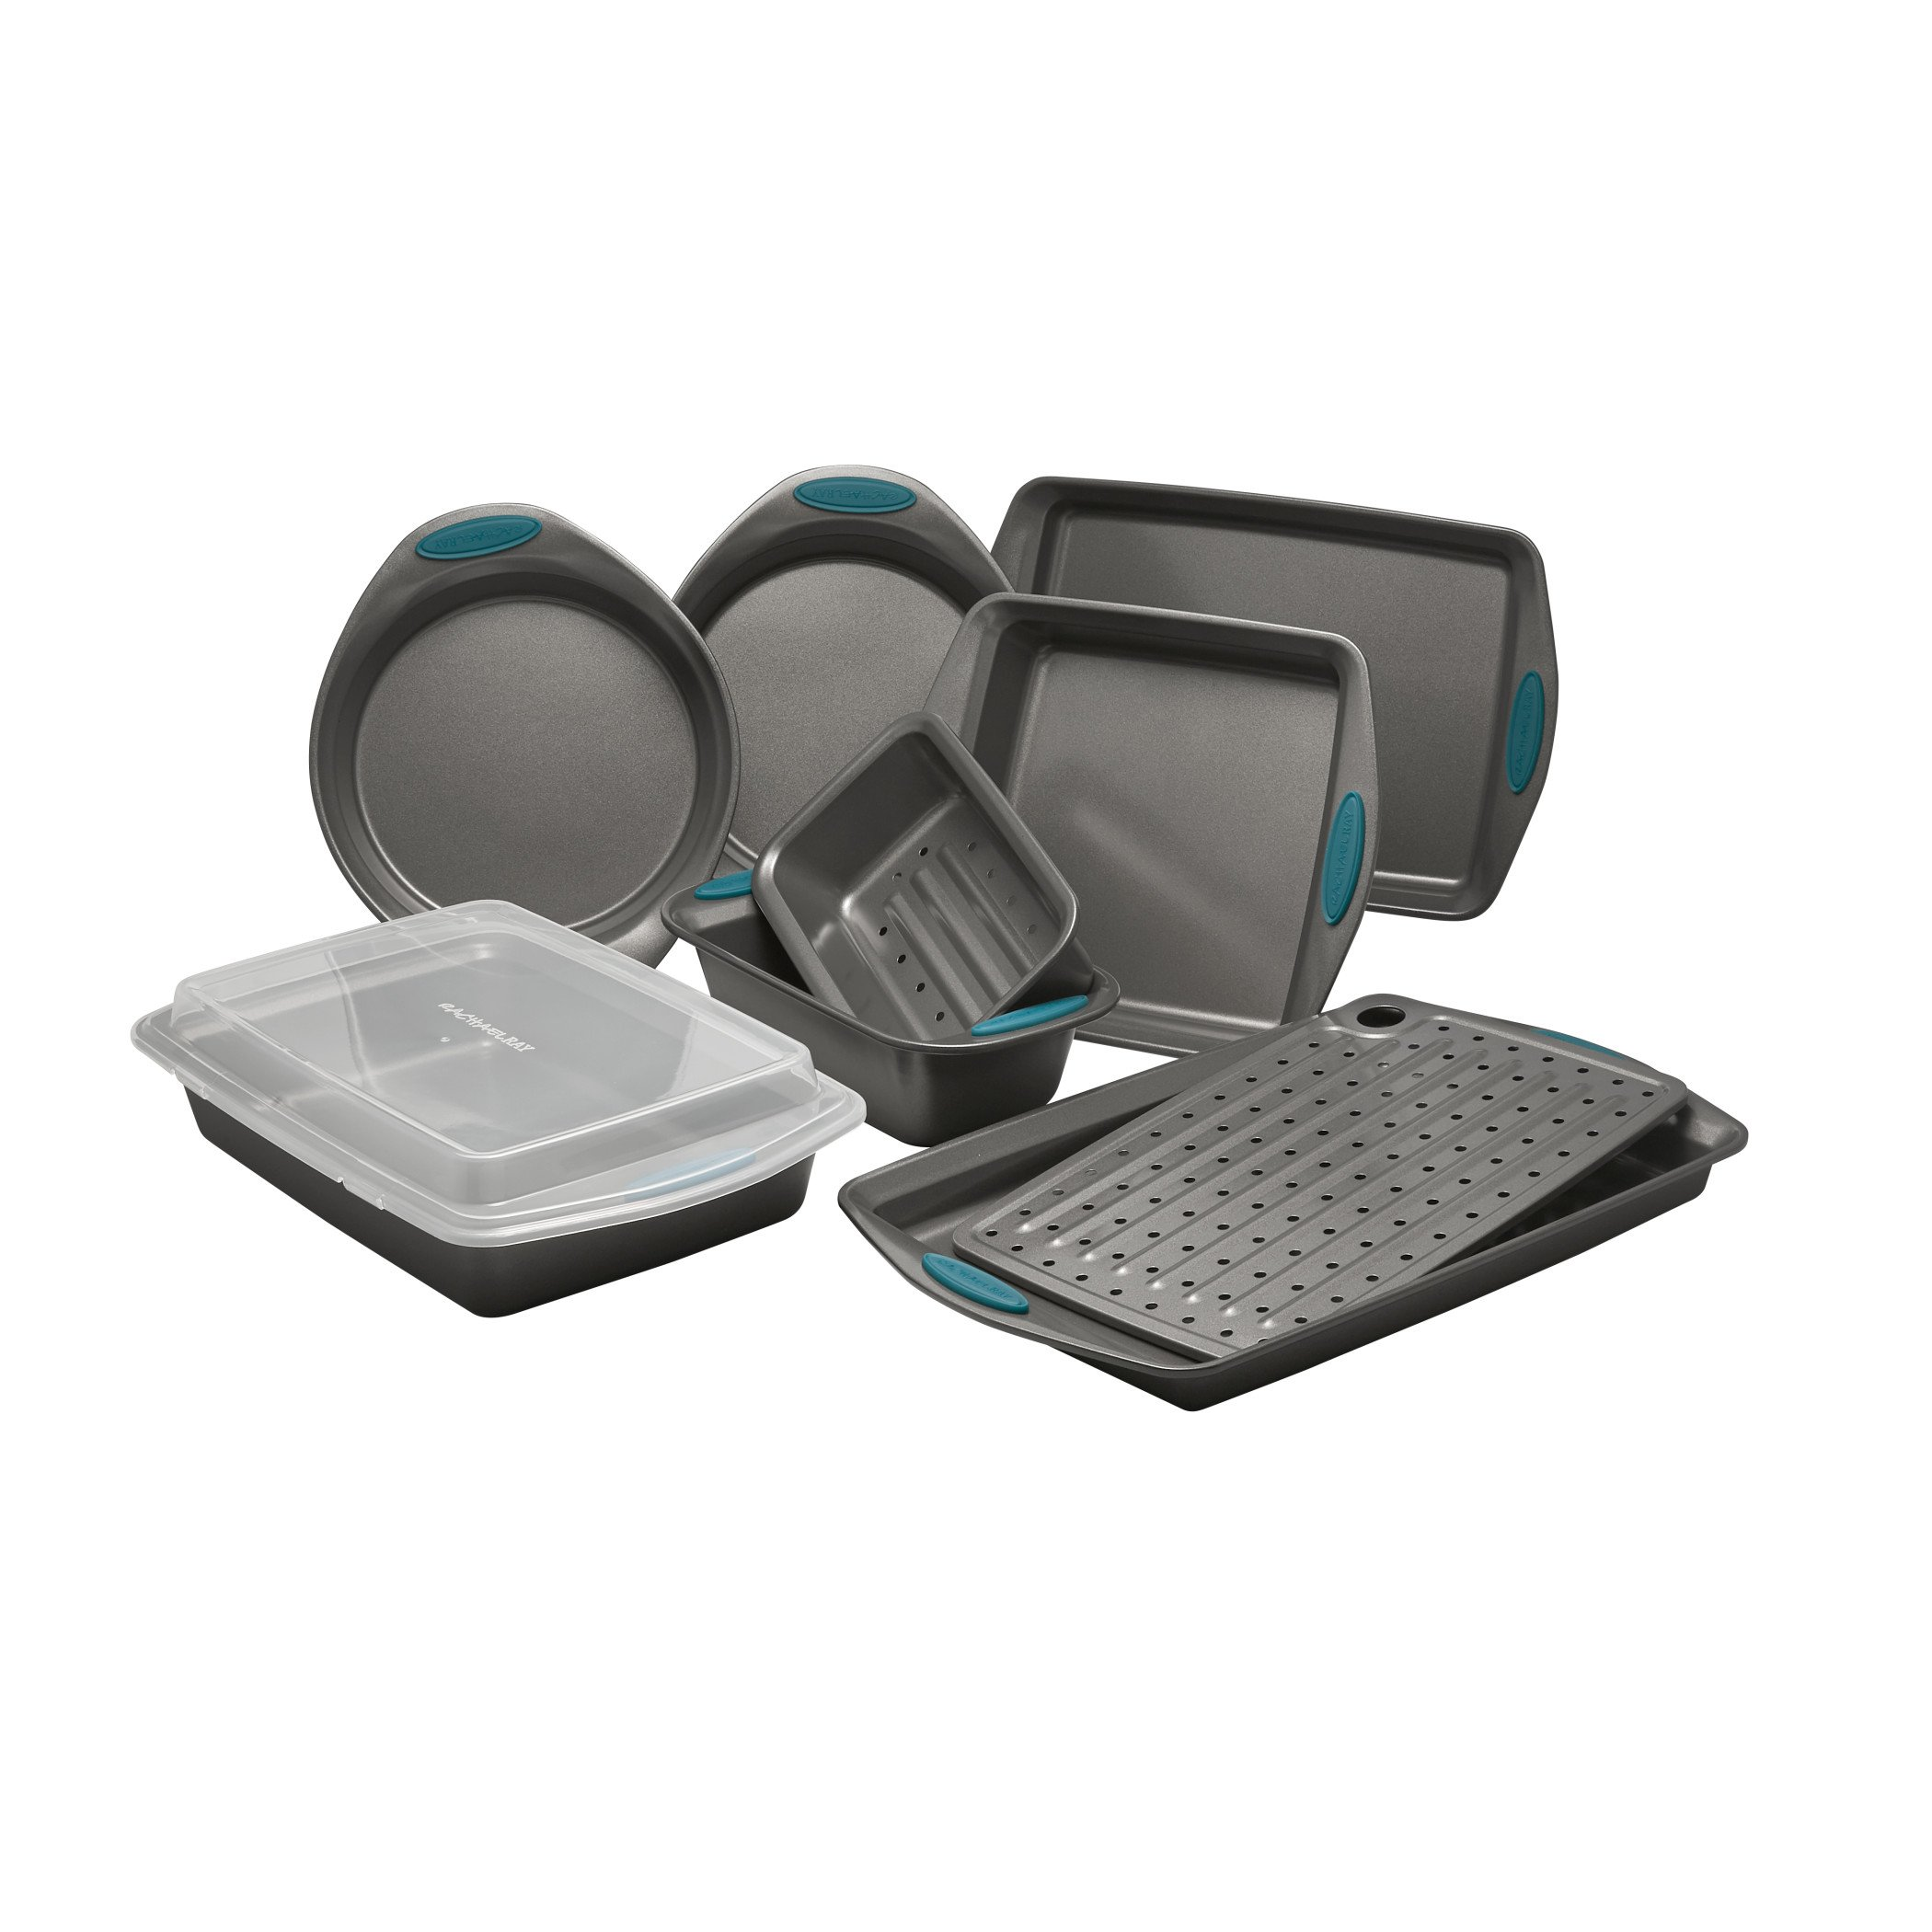 10 Piece Yum-o! Nonstick Bakeware Oven Lovin' Bakeware Set, Gray with Marine Blue Handles-Bakeware Sets 3.24